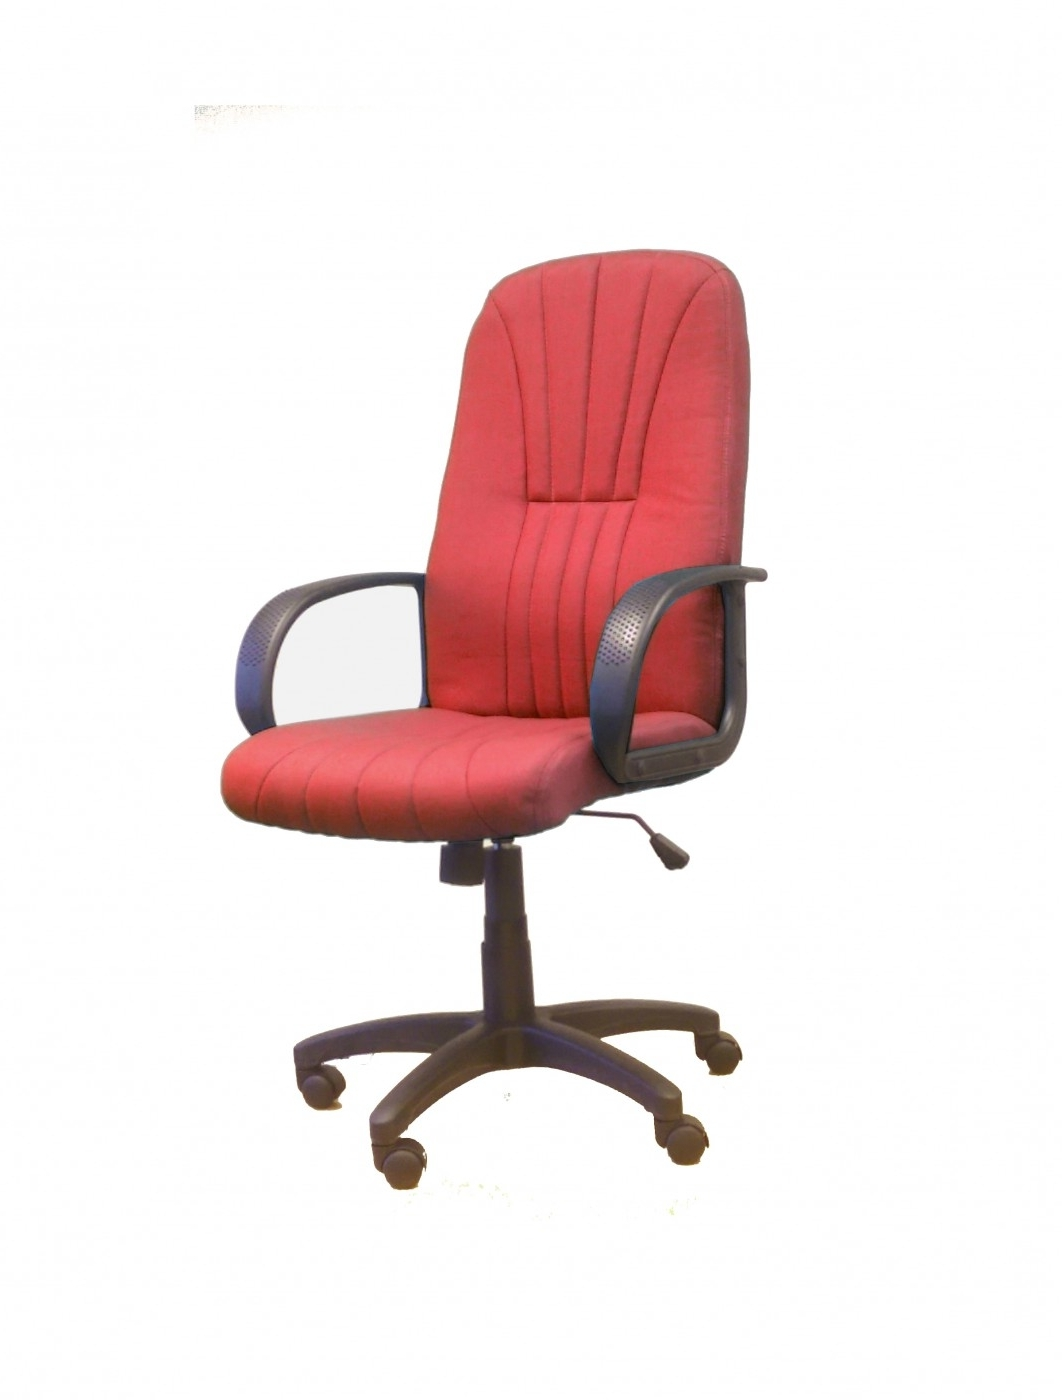 Famous Furniture : Executive Office Chair Ergonomic Office Chair' Big And In Executive Office Chairs Without Wheels (View 9 of 20)